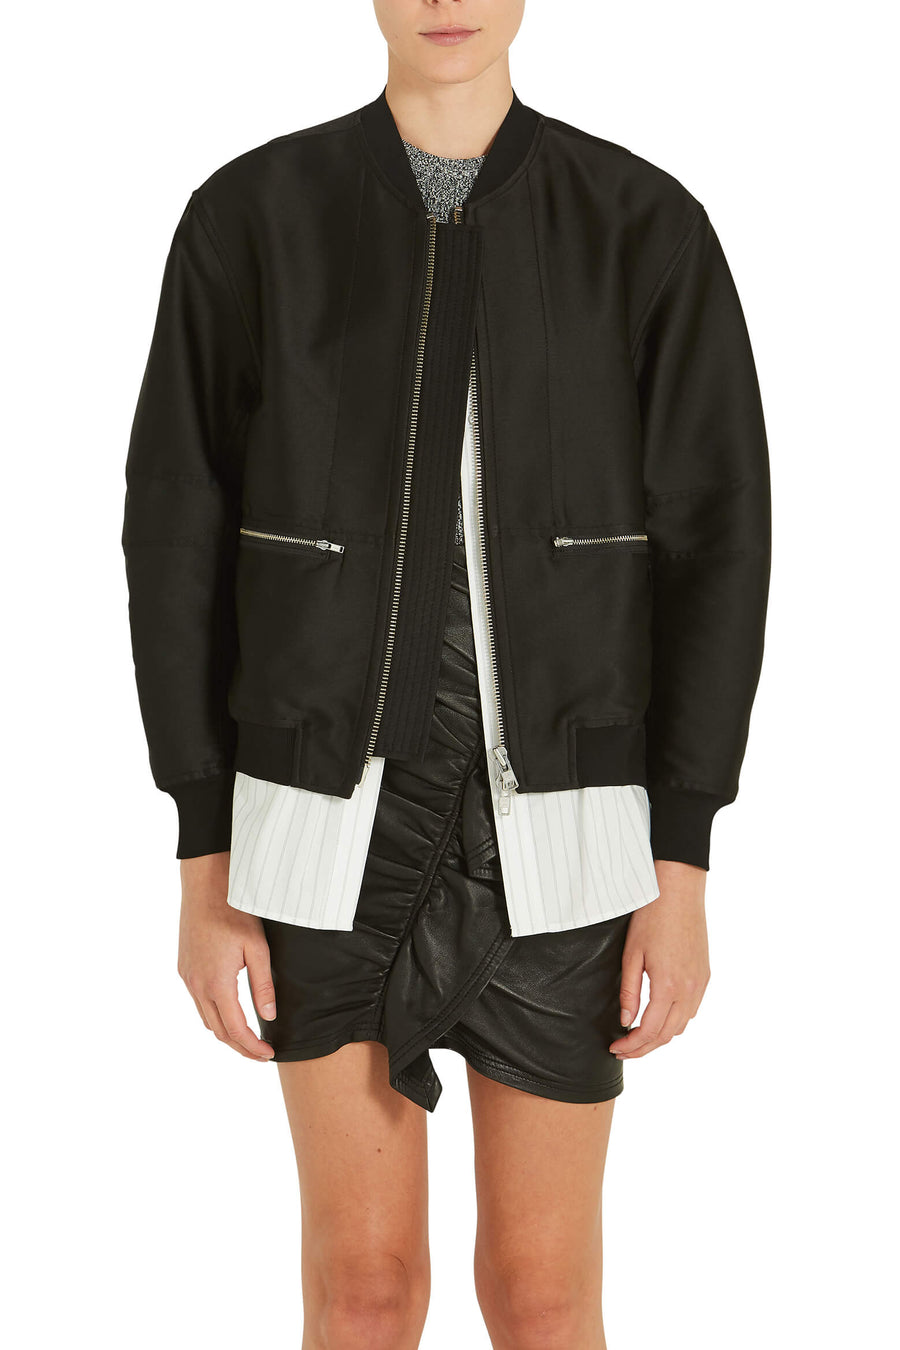 3.1 Phillip Lim Bomber With Underlay in Black from The New Trend Front